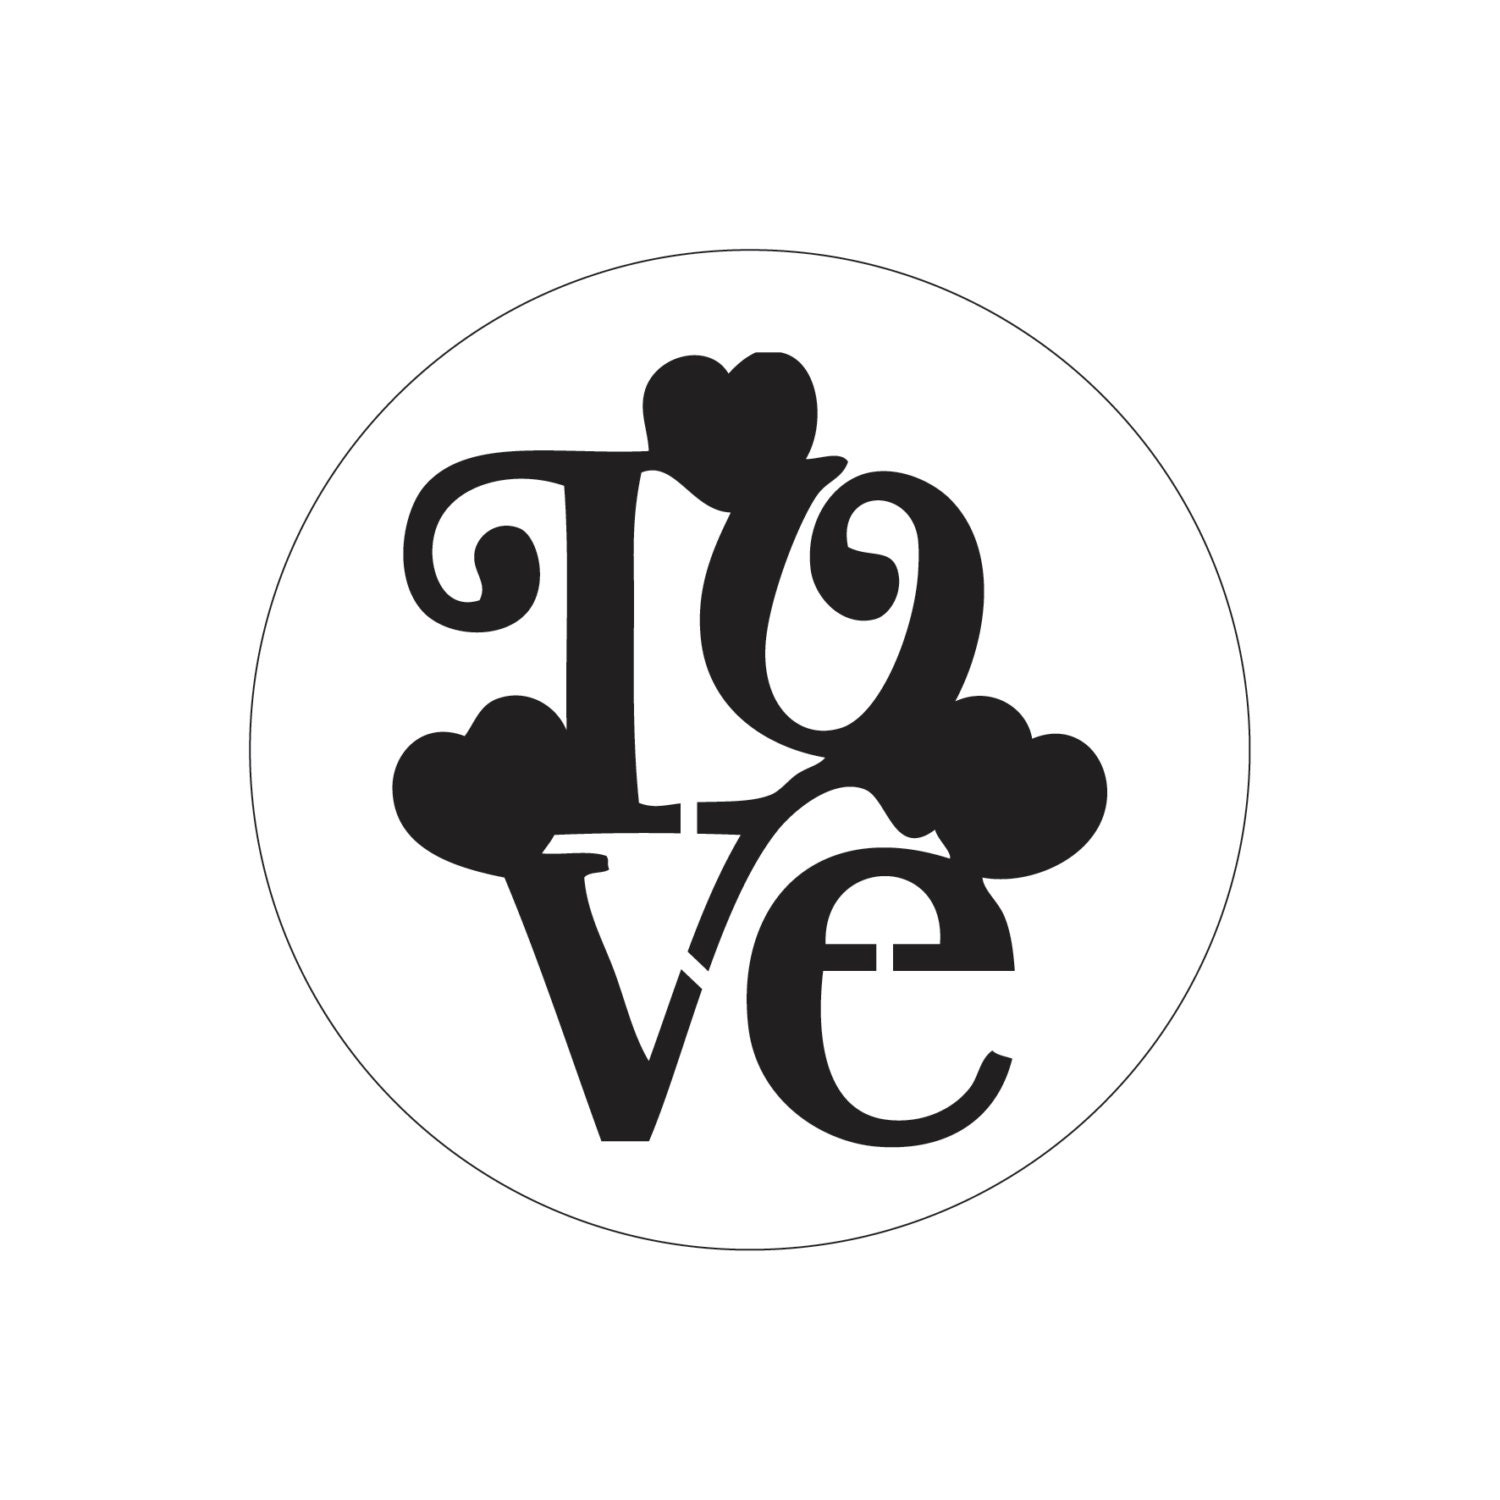 Simple Stencil Designs : Love cake stencil decoration simple and easy for